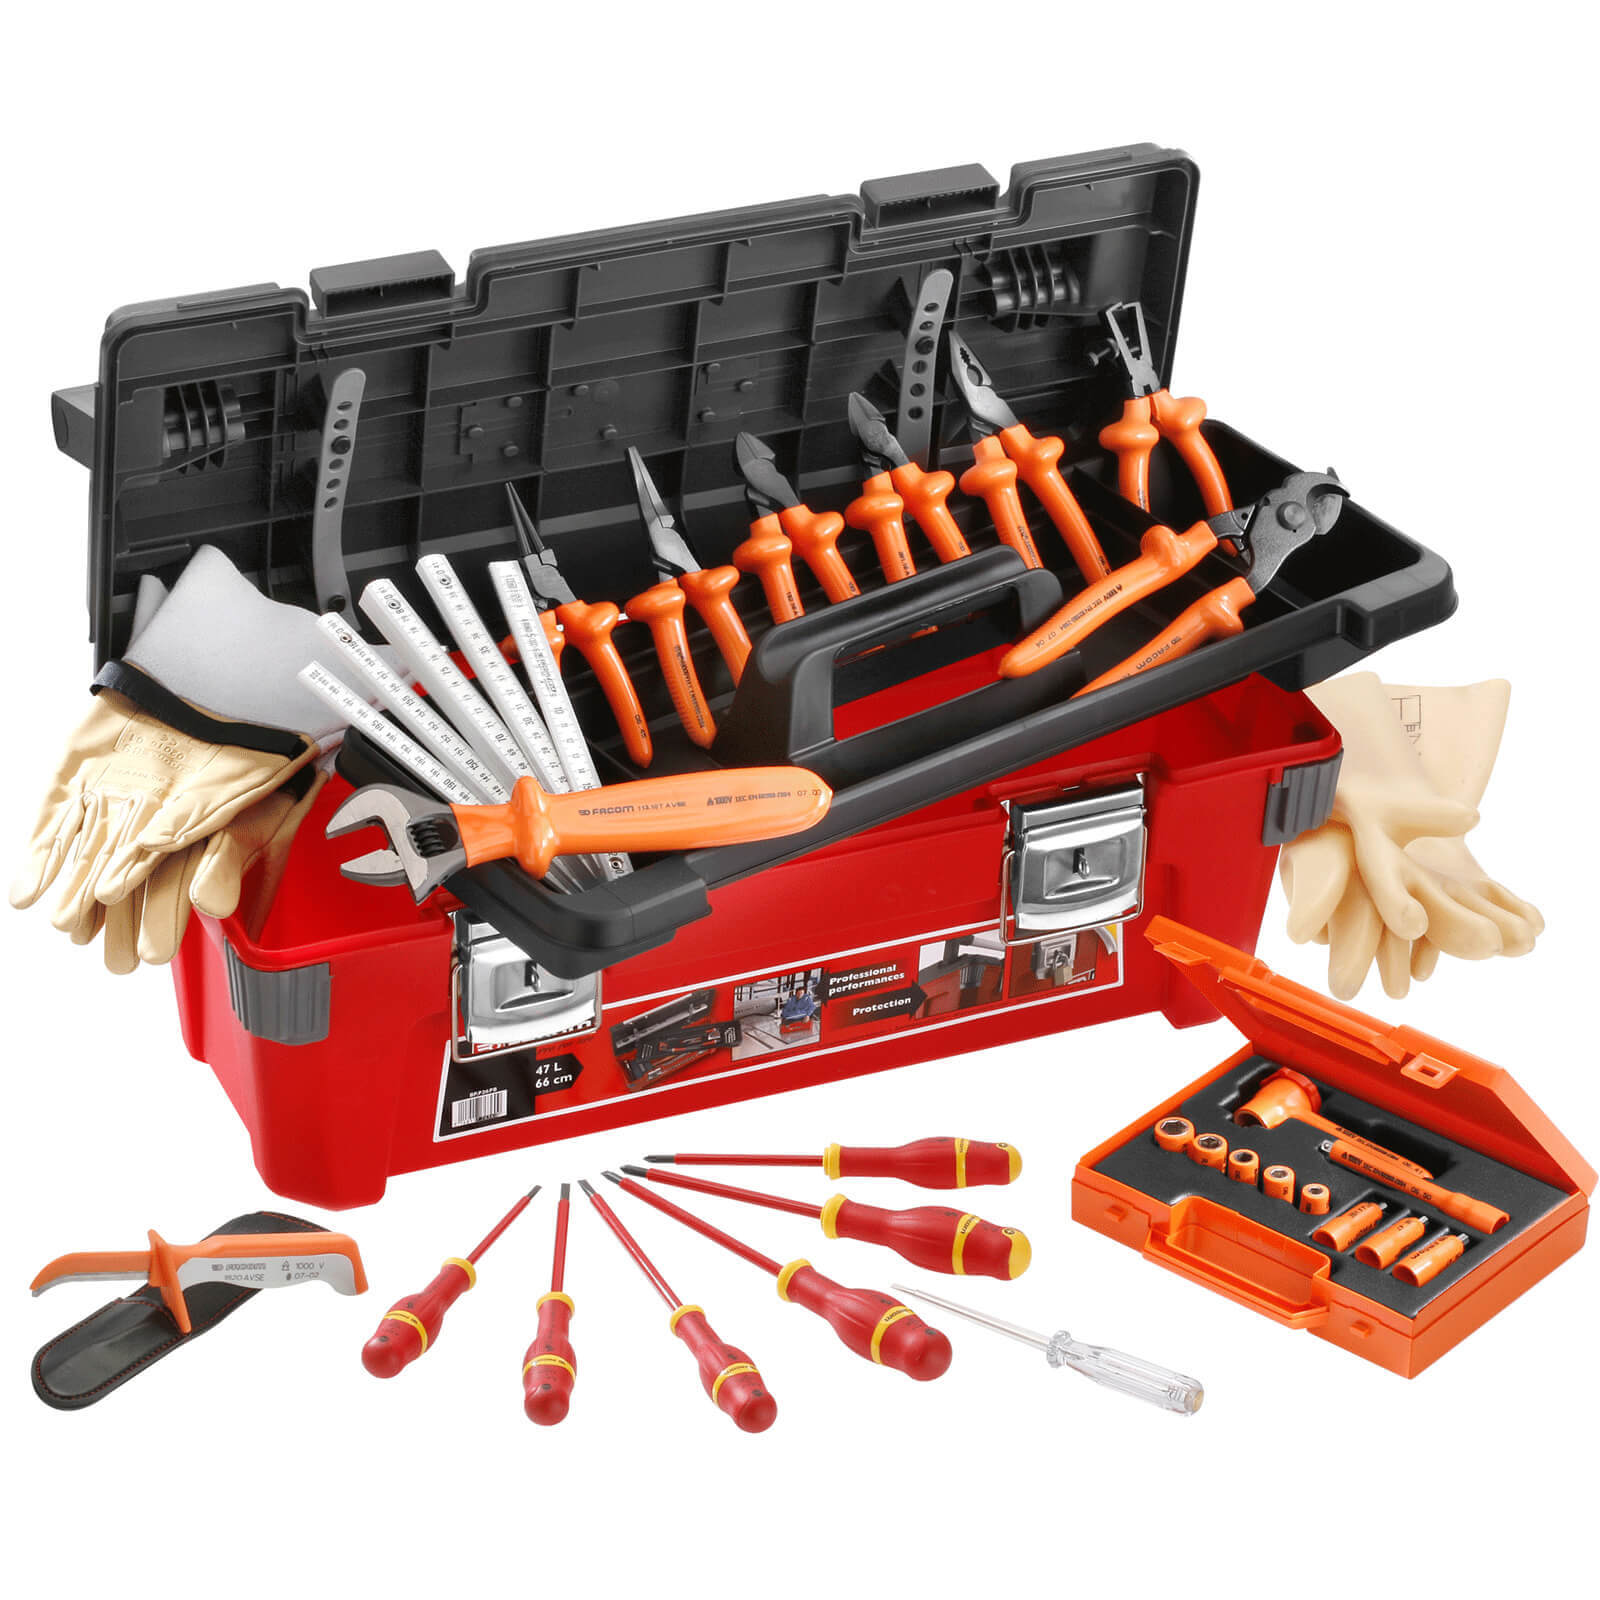 Image of Facom 2185C.VSE 20 Piece Insulated Hand Tool Kit